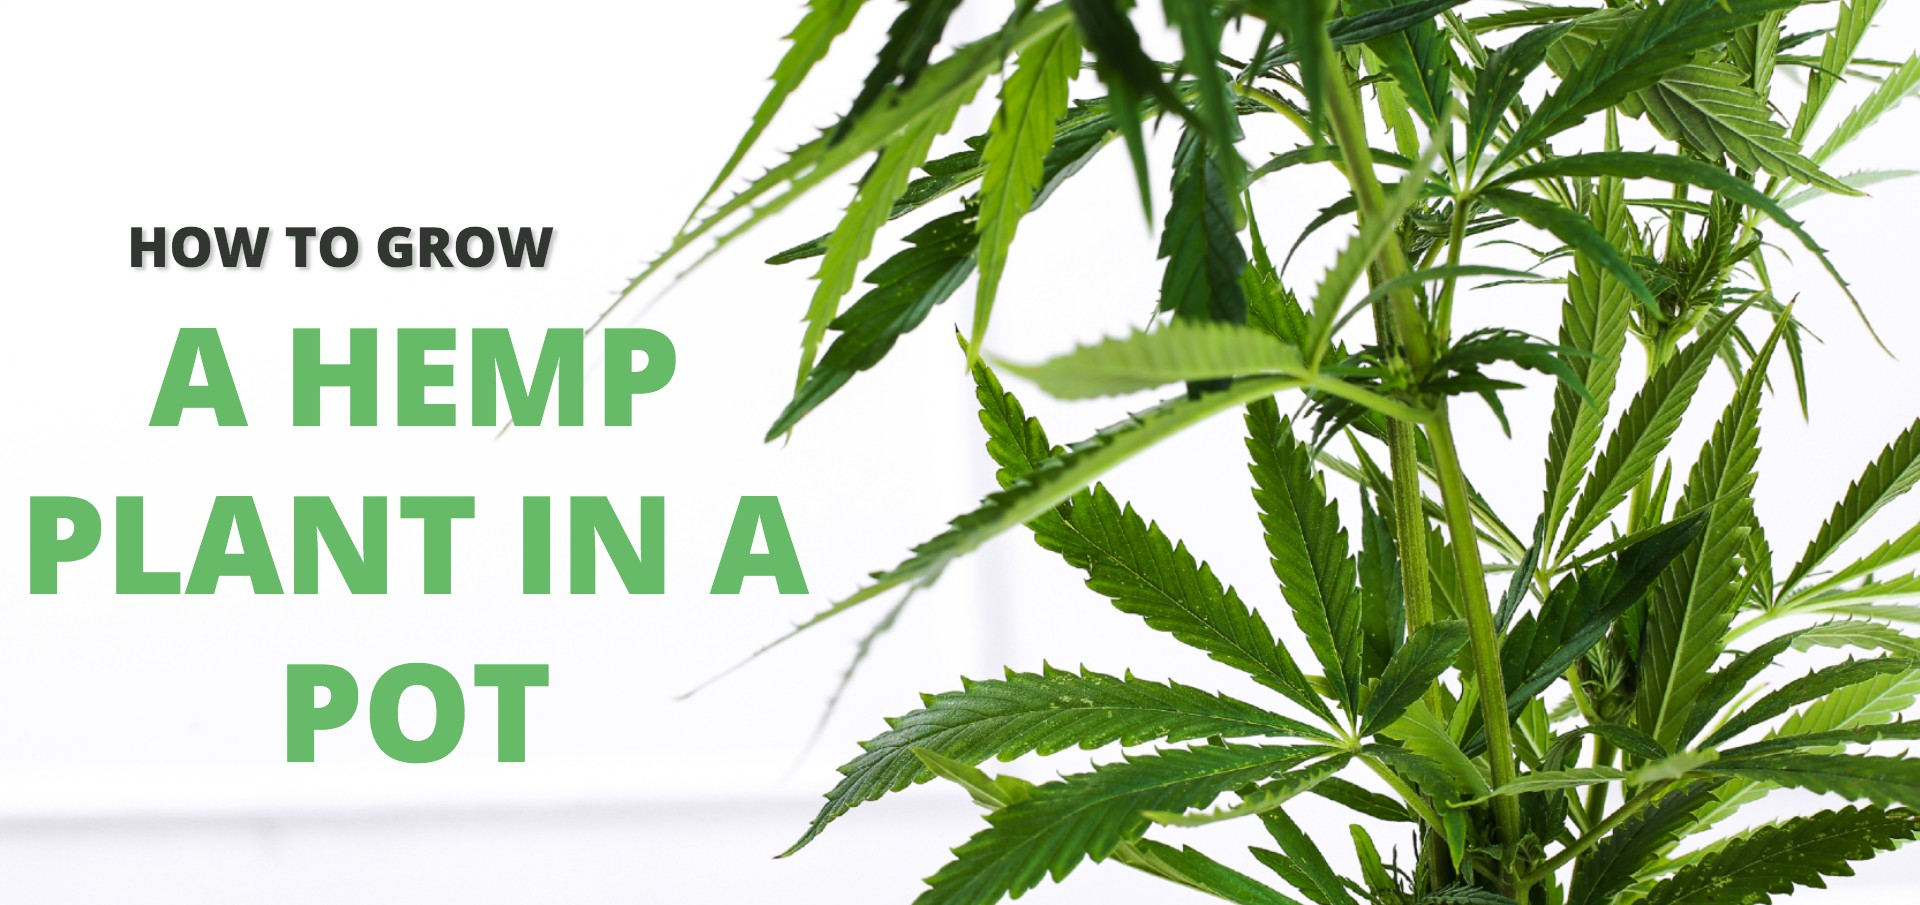 How to grow a hemp plant in a pot